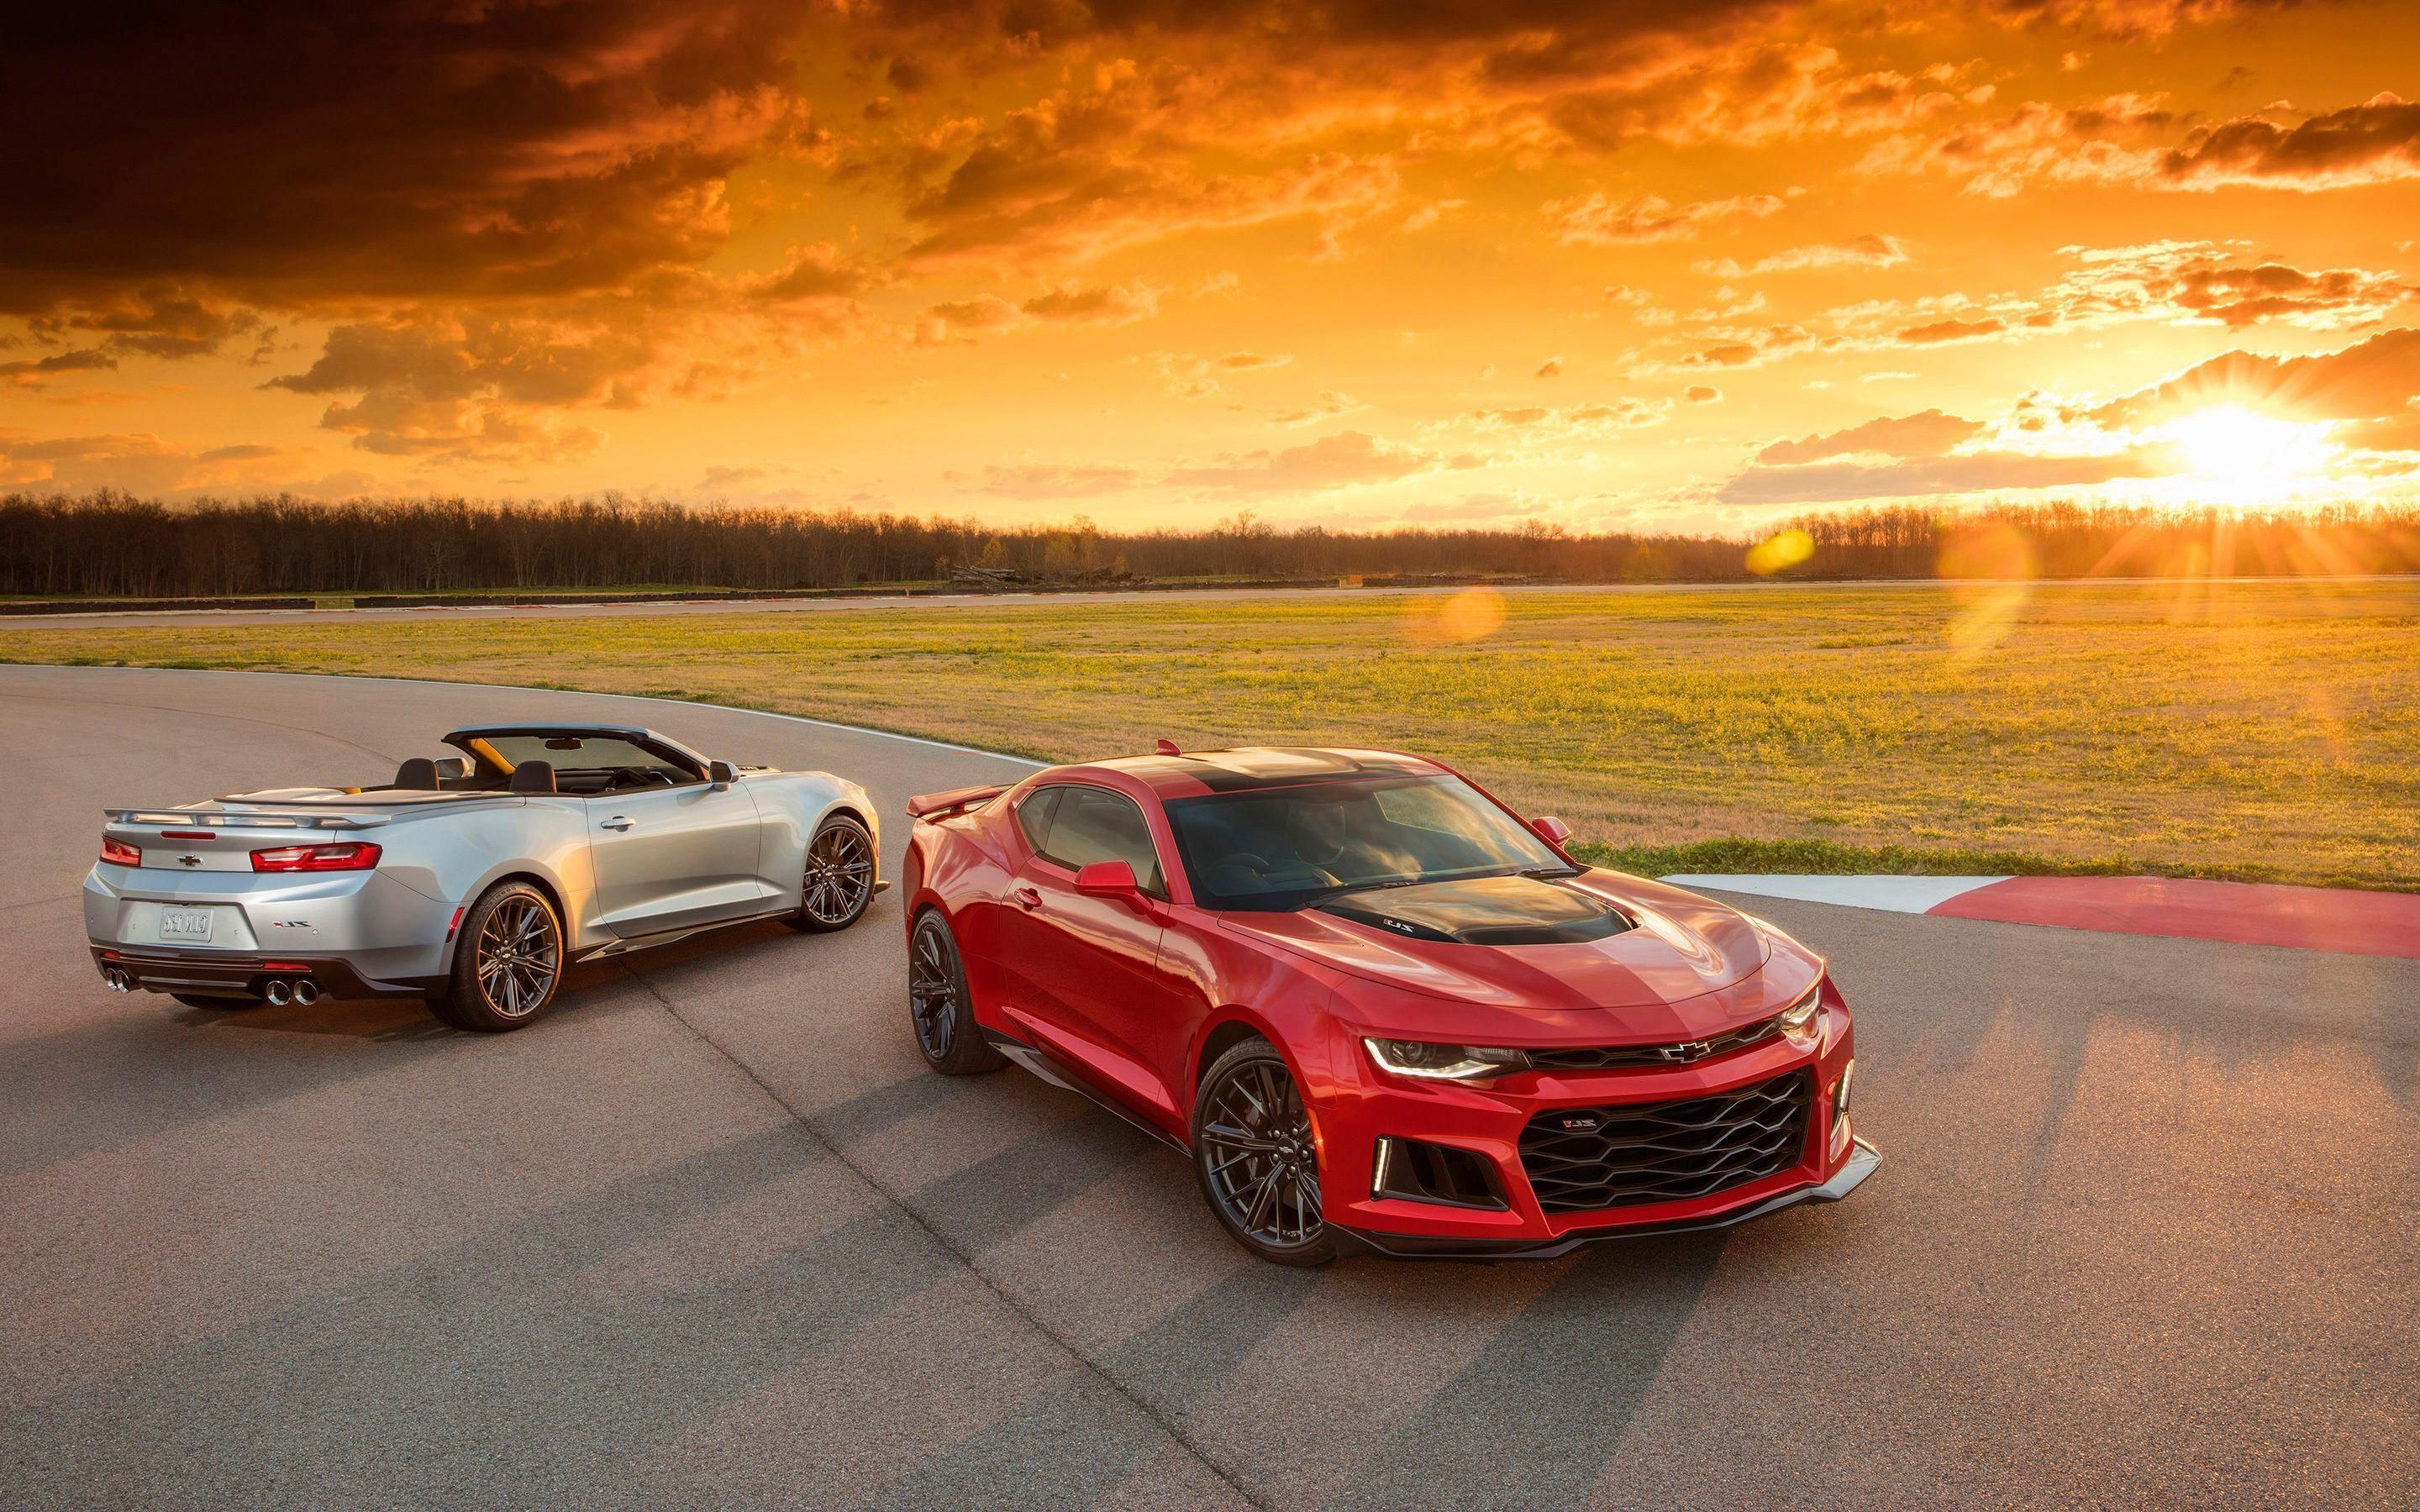 2017 Camaro Zl1 Wallpapers 2880x1800